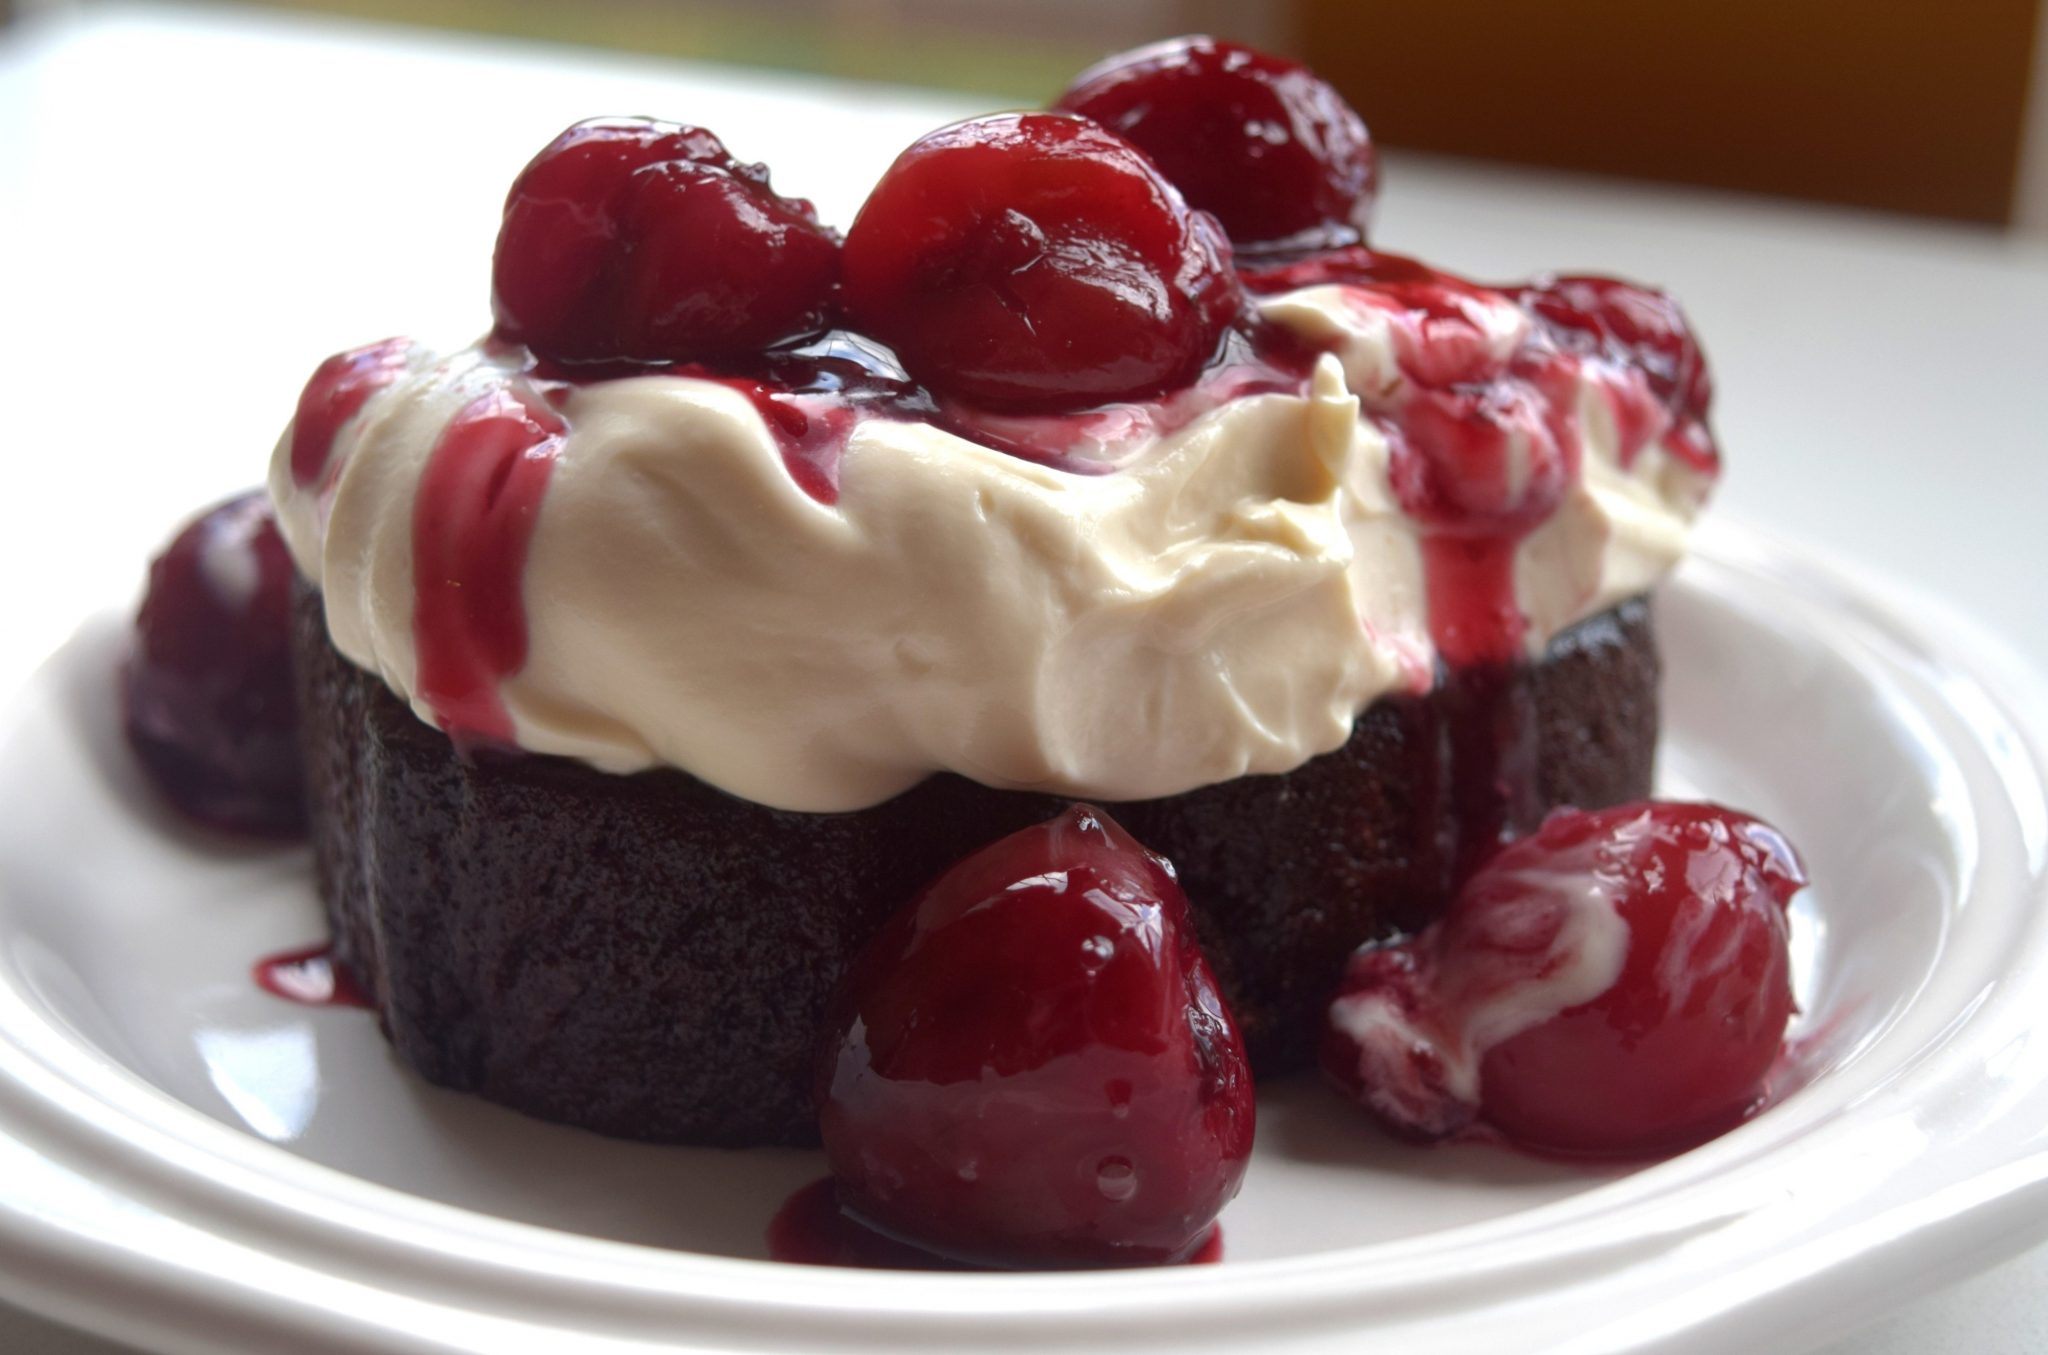 Peach Ale Cherries on Chocolate Pound Cake with Chocolate Stout Whipped Mascapone